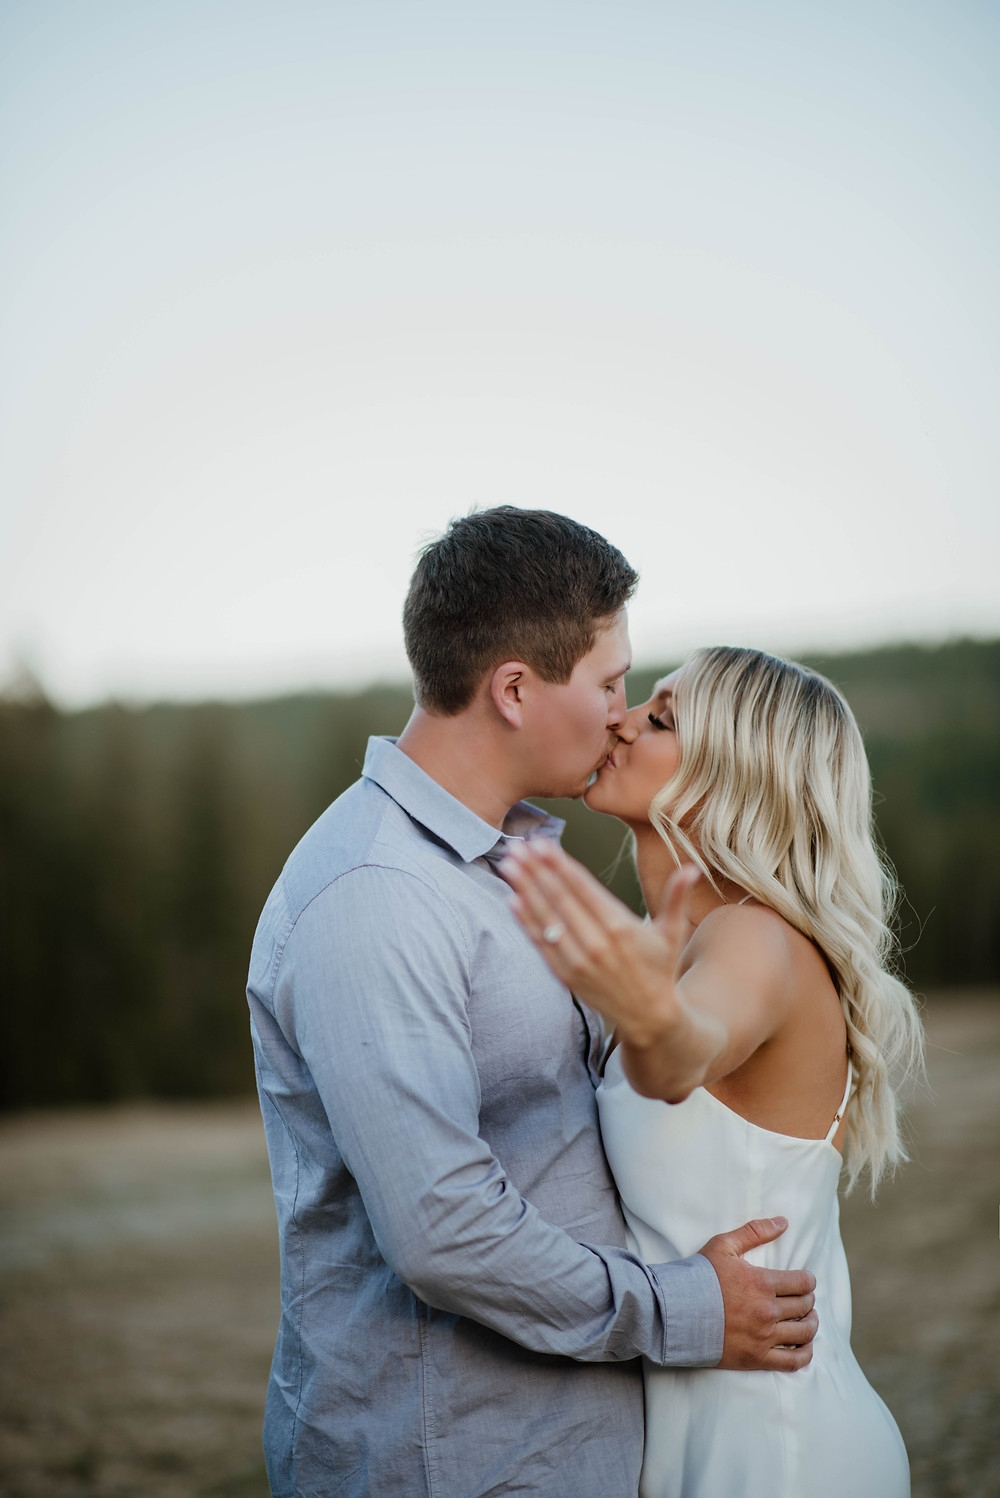 Lake Como engagement session photographed by Montana wedding photographer and videographer, Infinite Photography and Film Missoula.